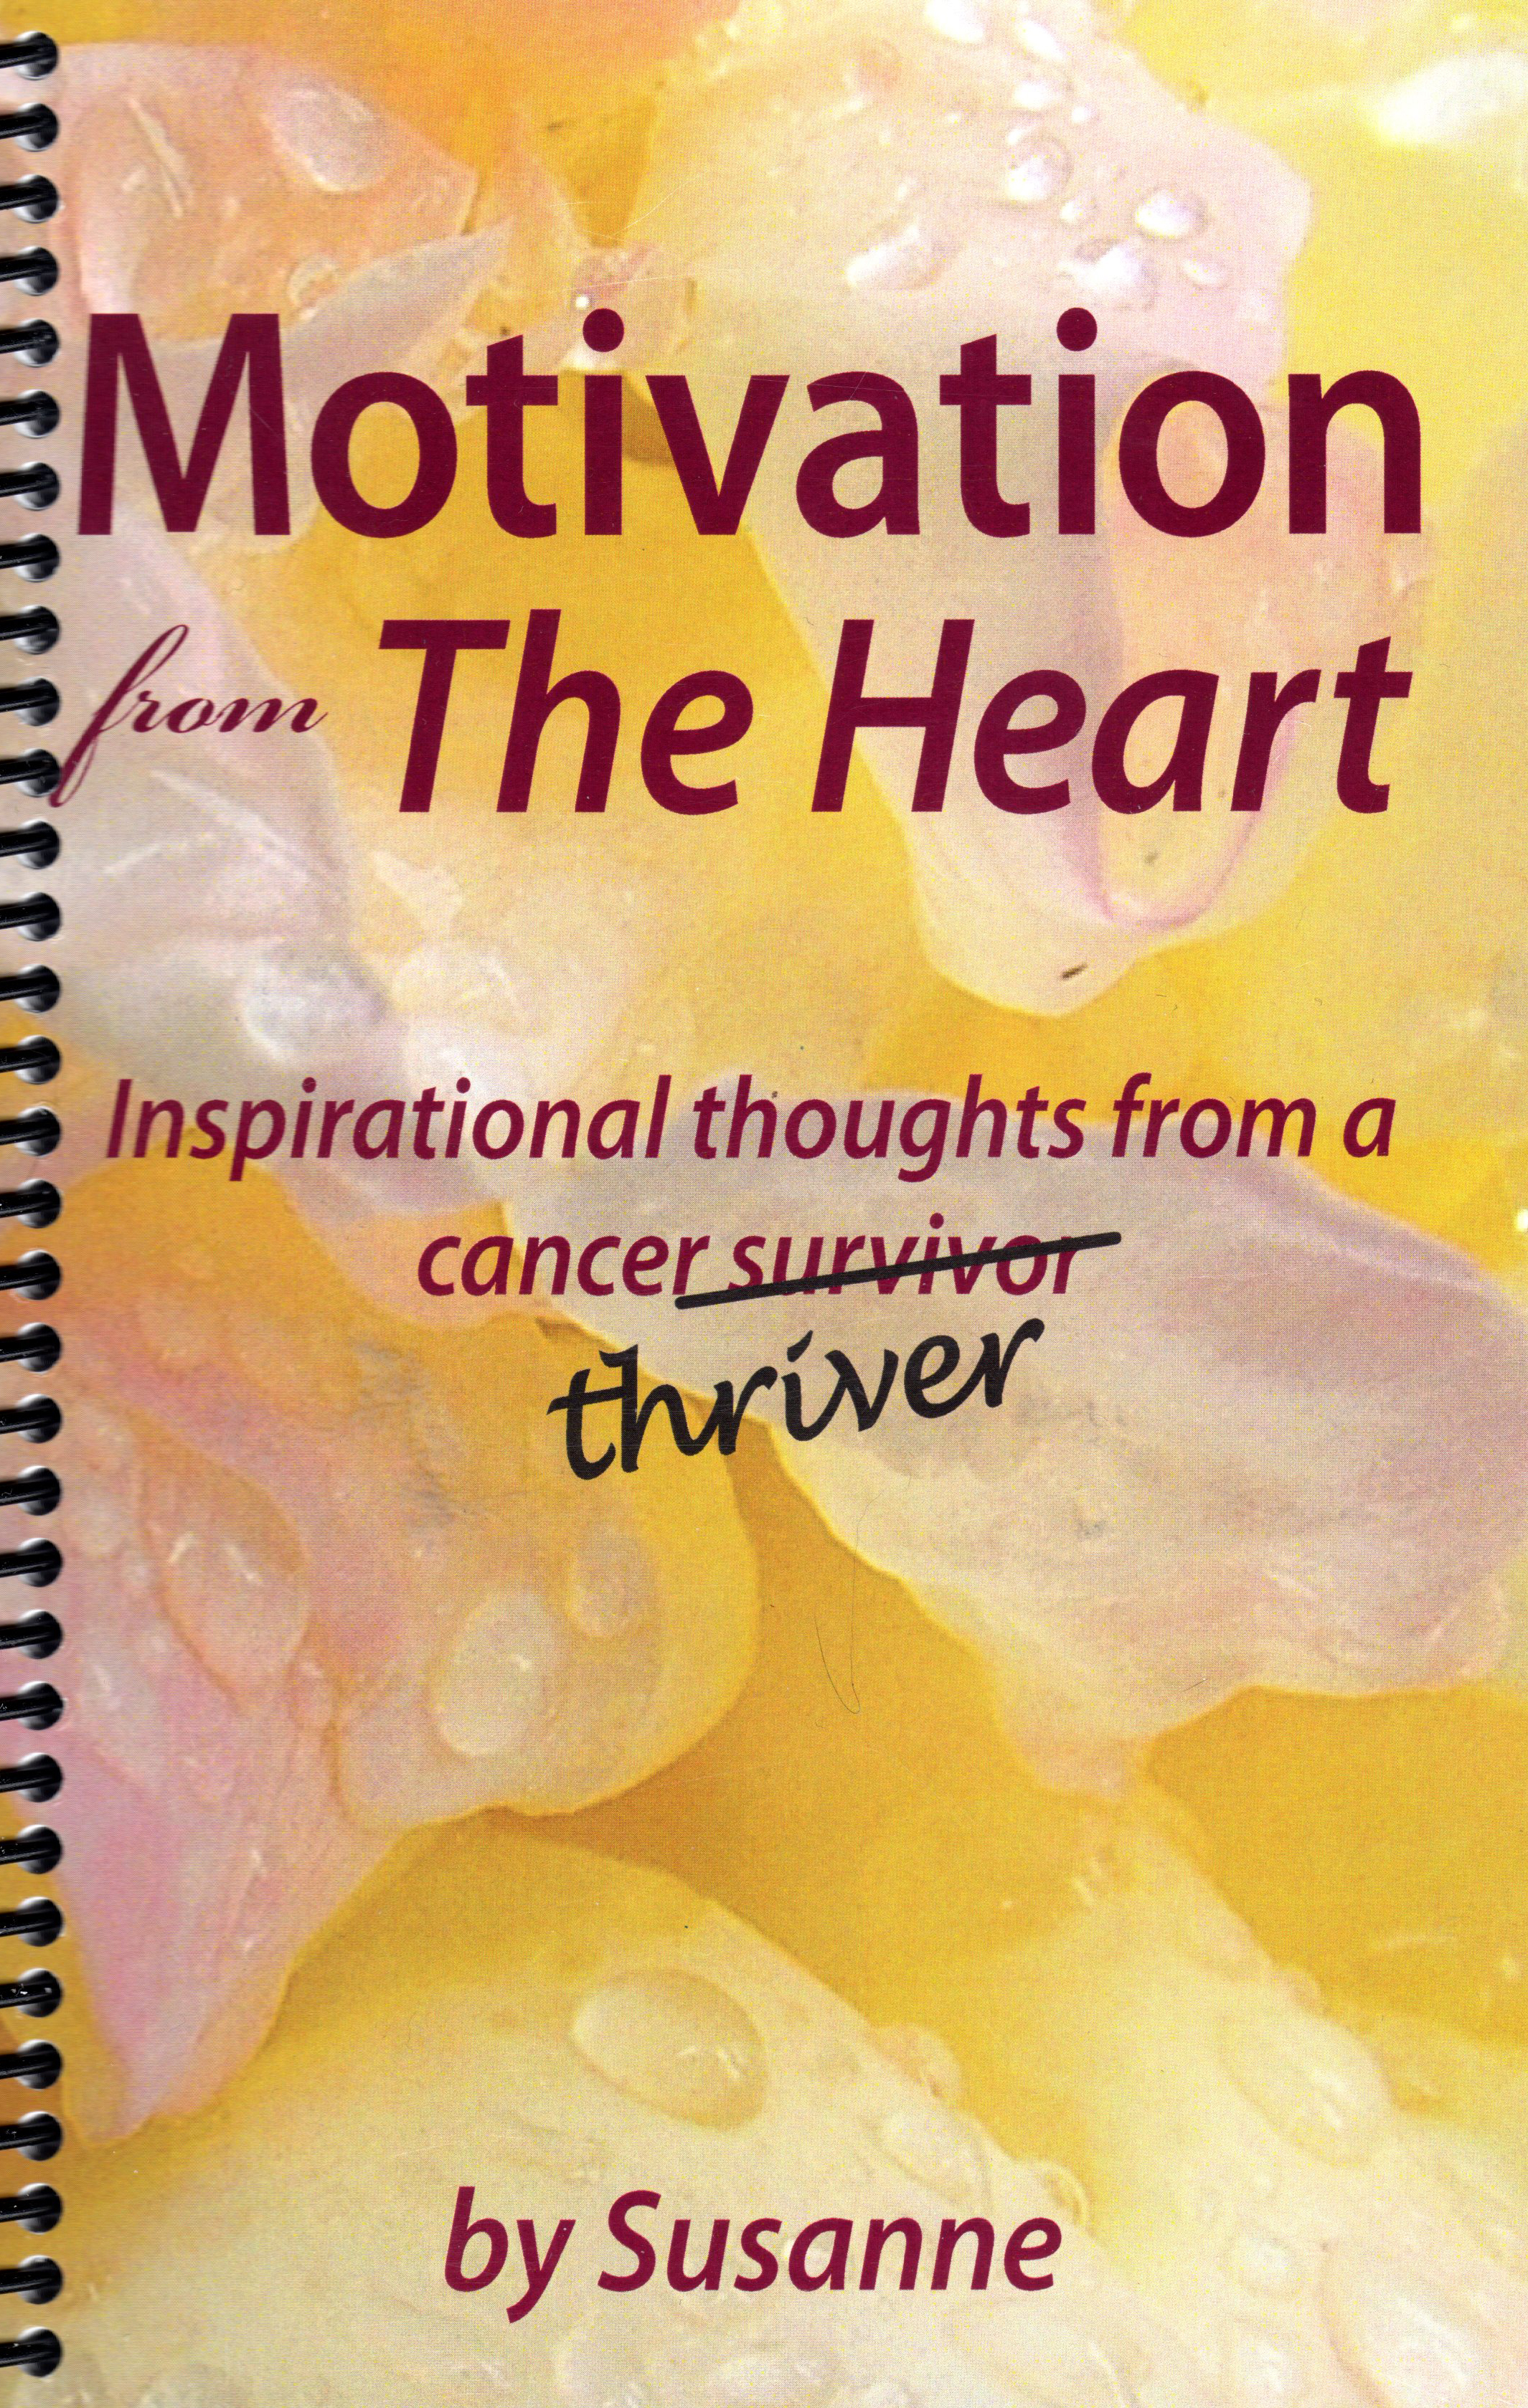 Book Cover Inspiration Jokes : Book order page motivation from the heart